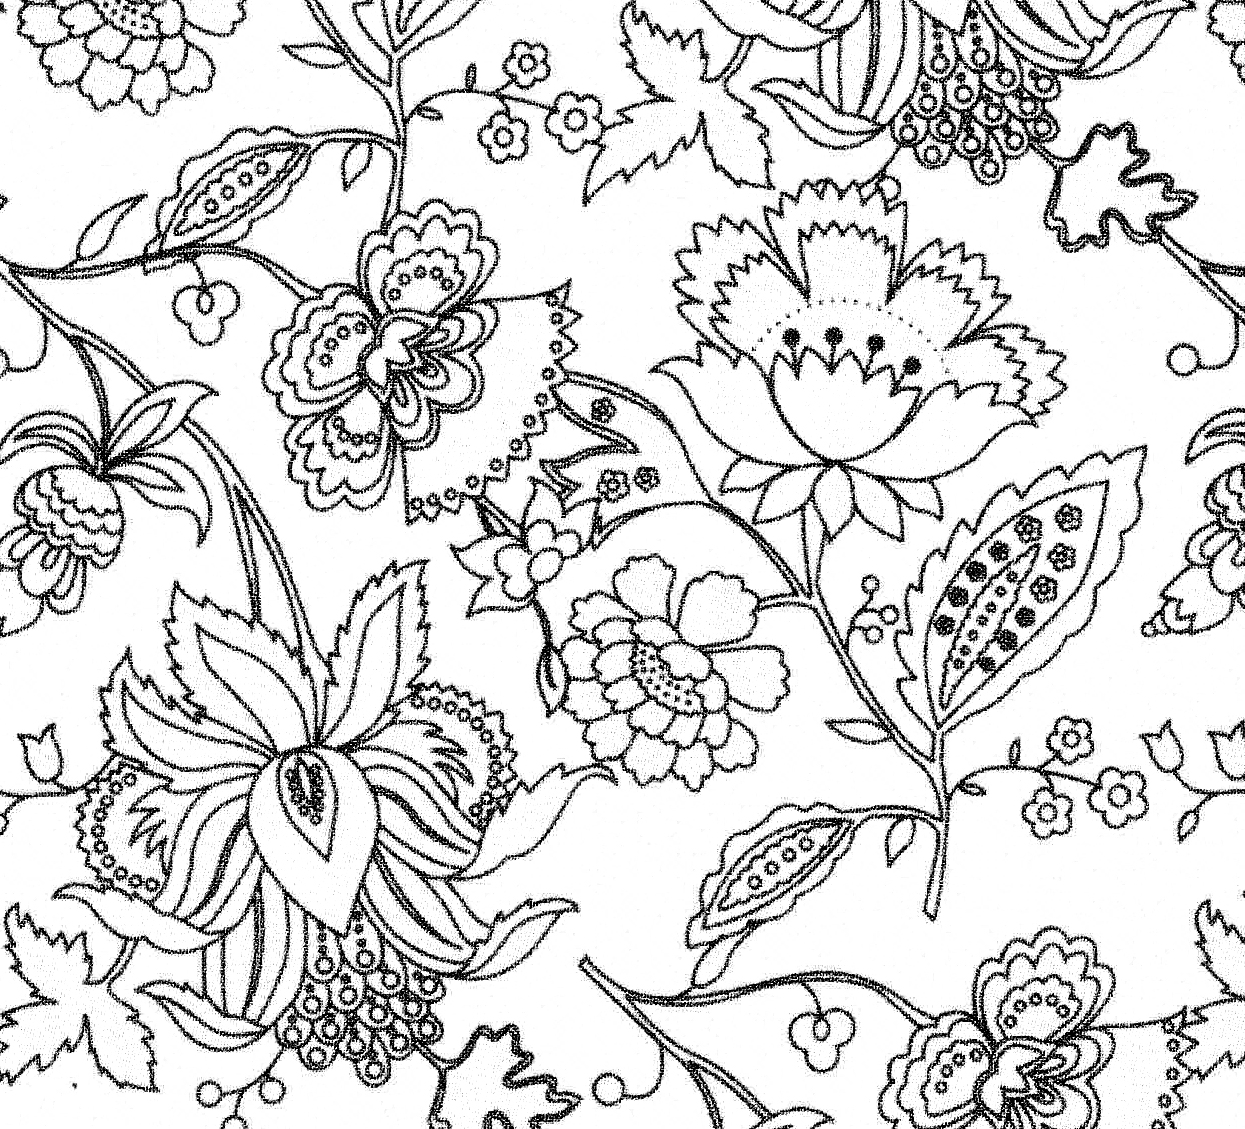 Line Art Aplic Flower Design : Floral drawings cliparts